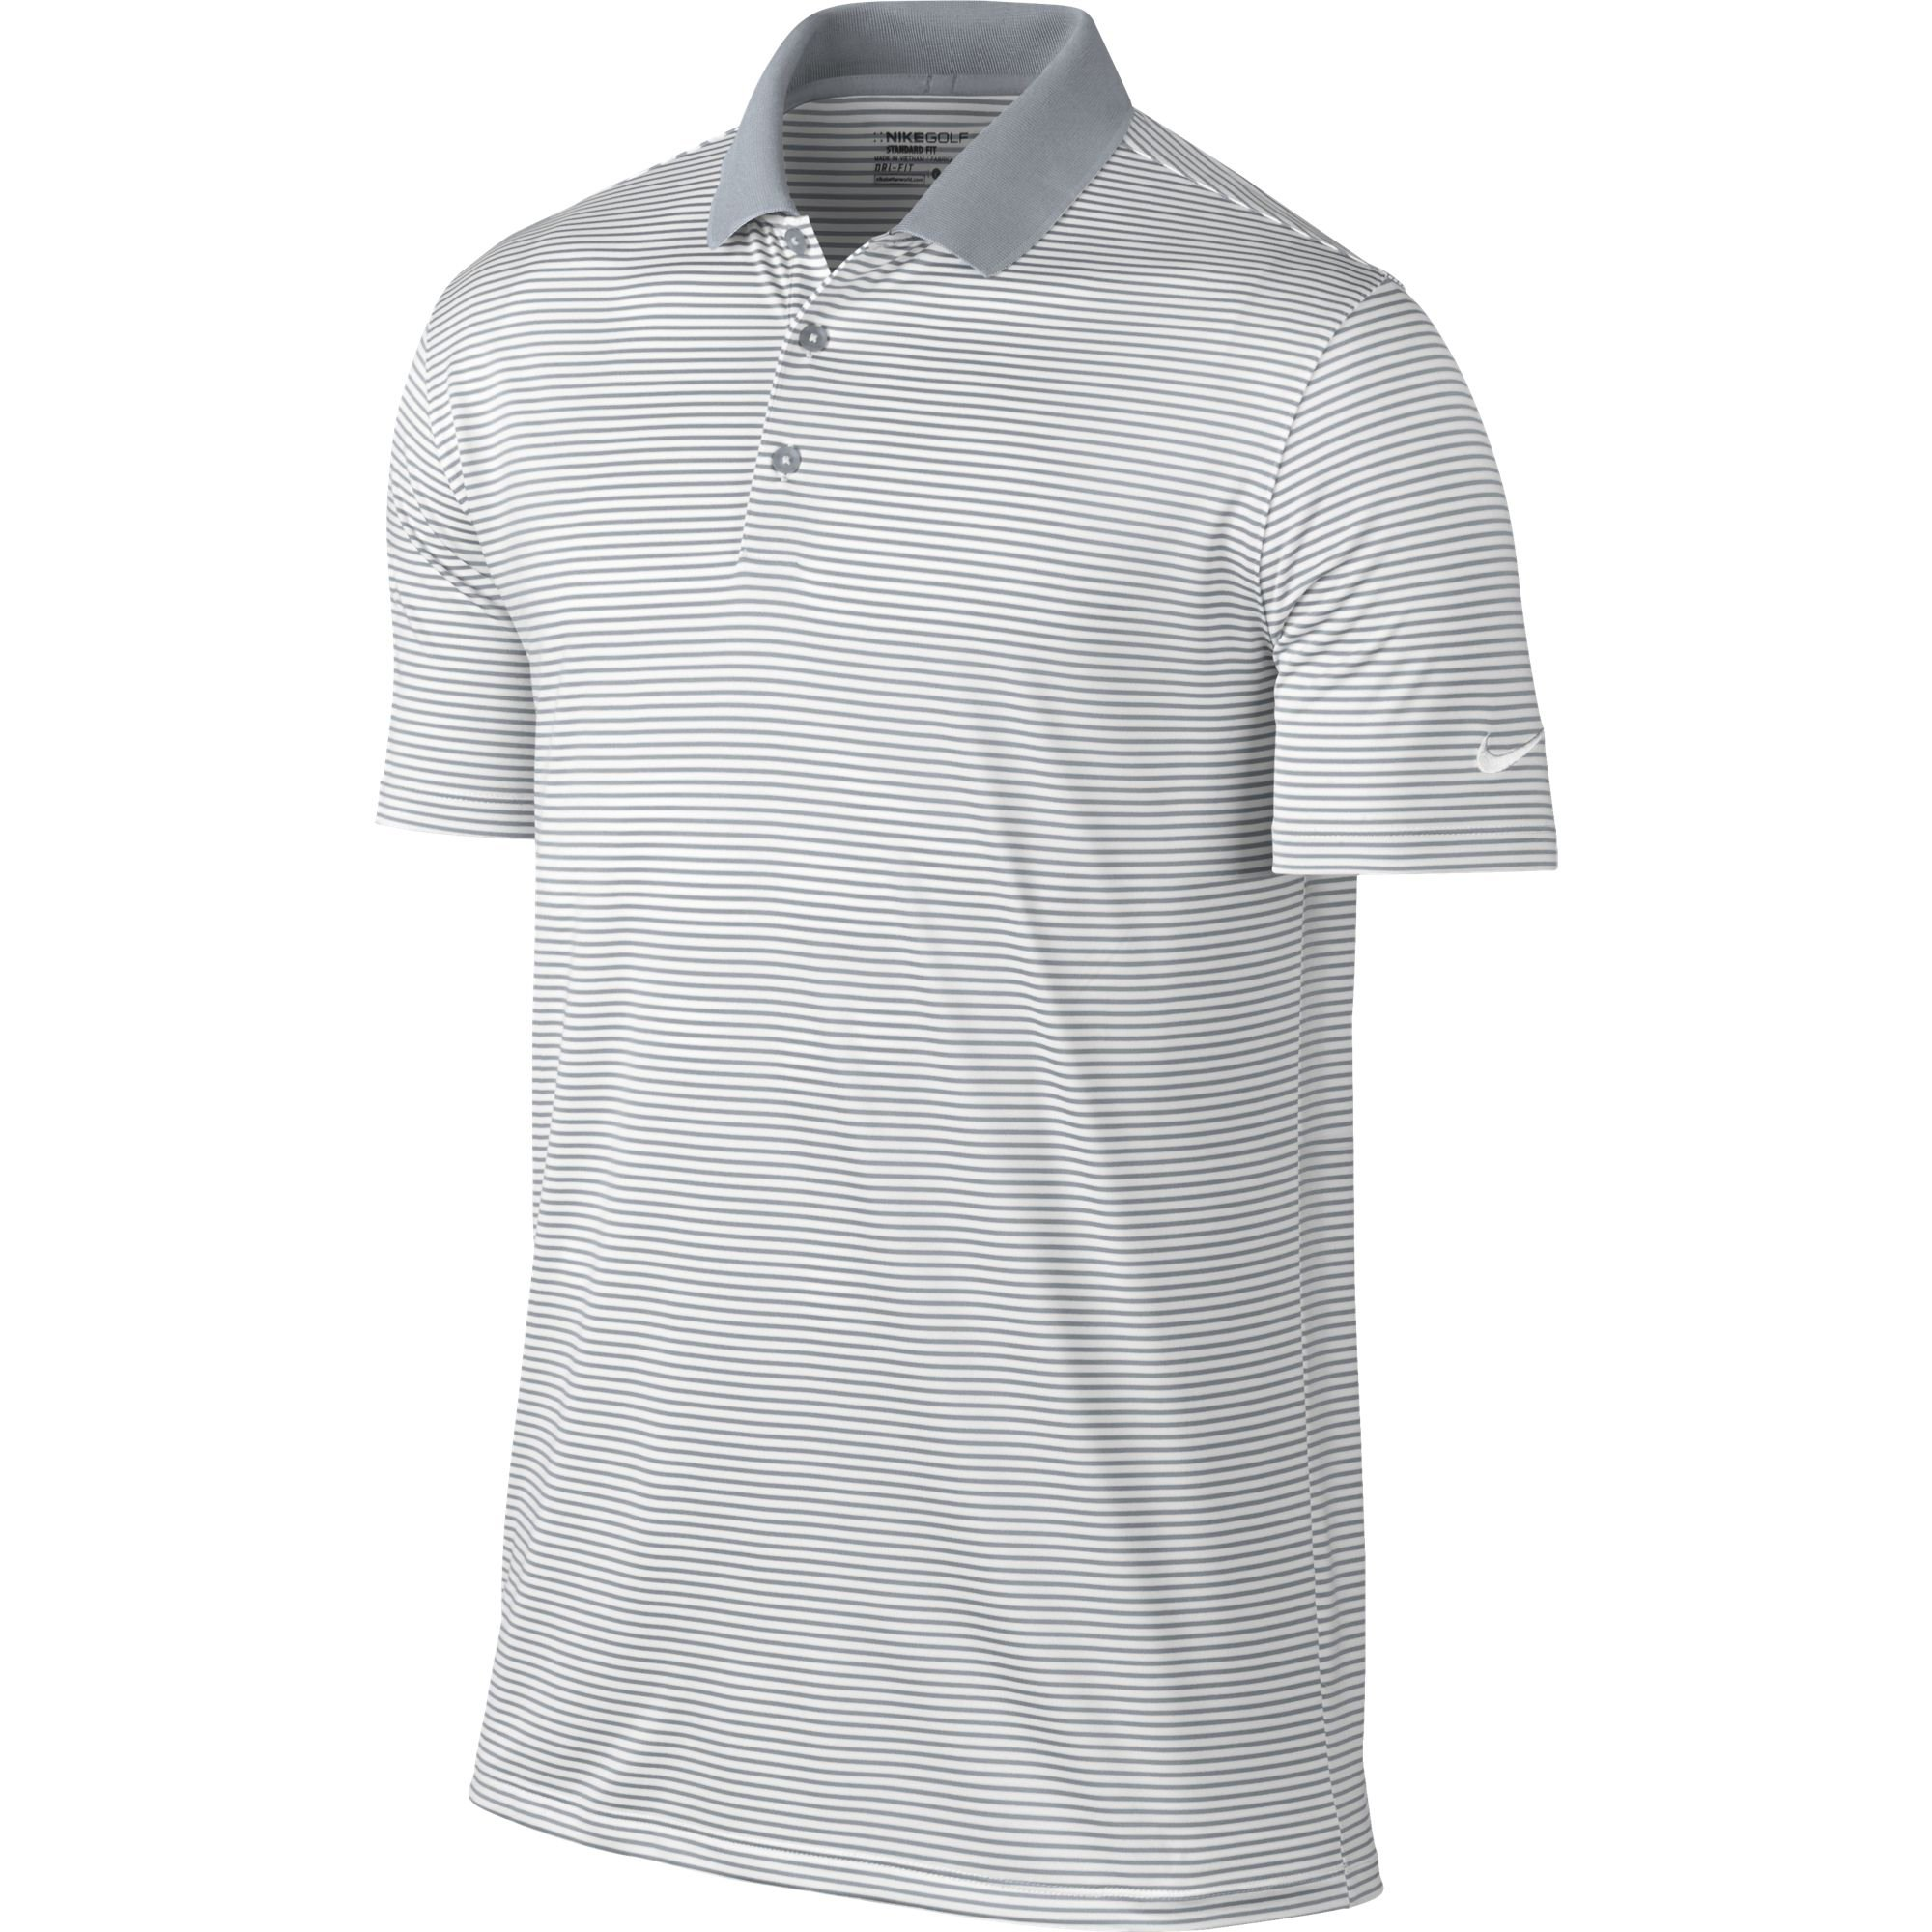 NIKE Men's Dry Victory Stripe Polo, White/Wolf Grey/Black, Small